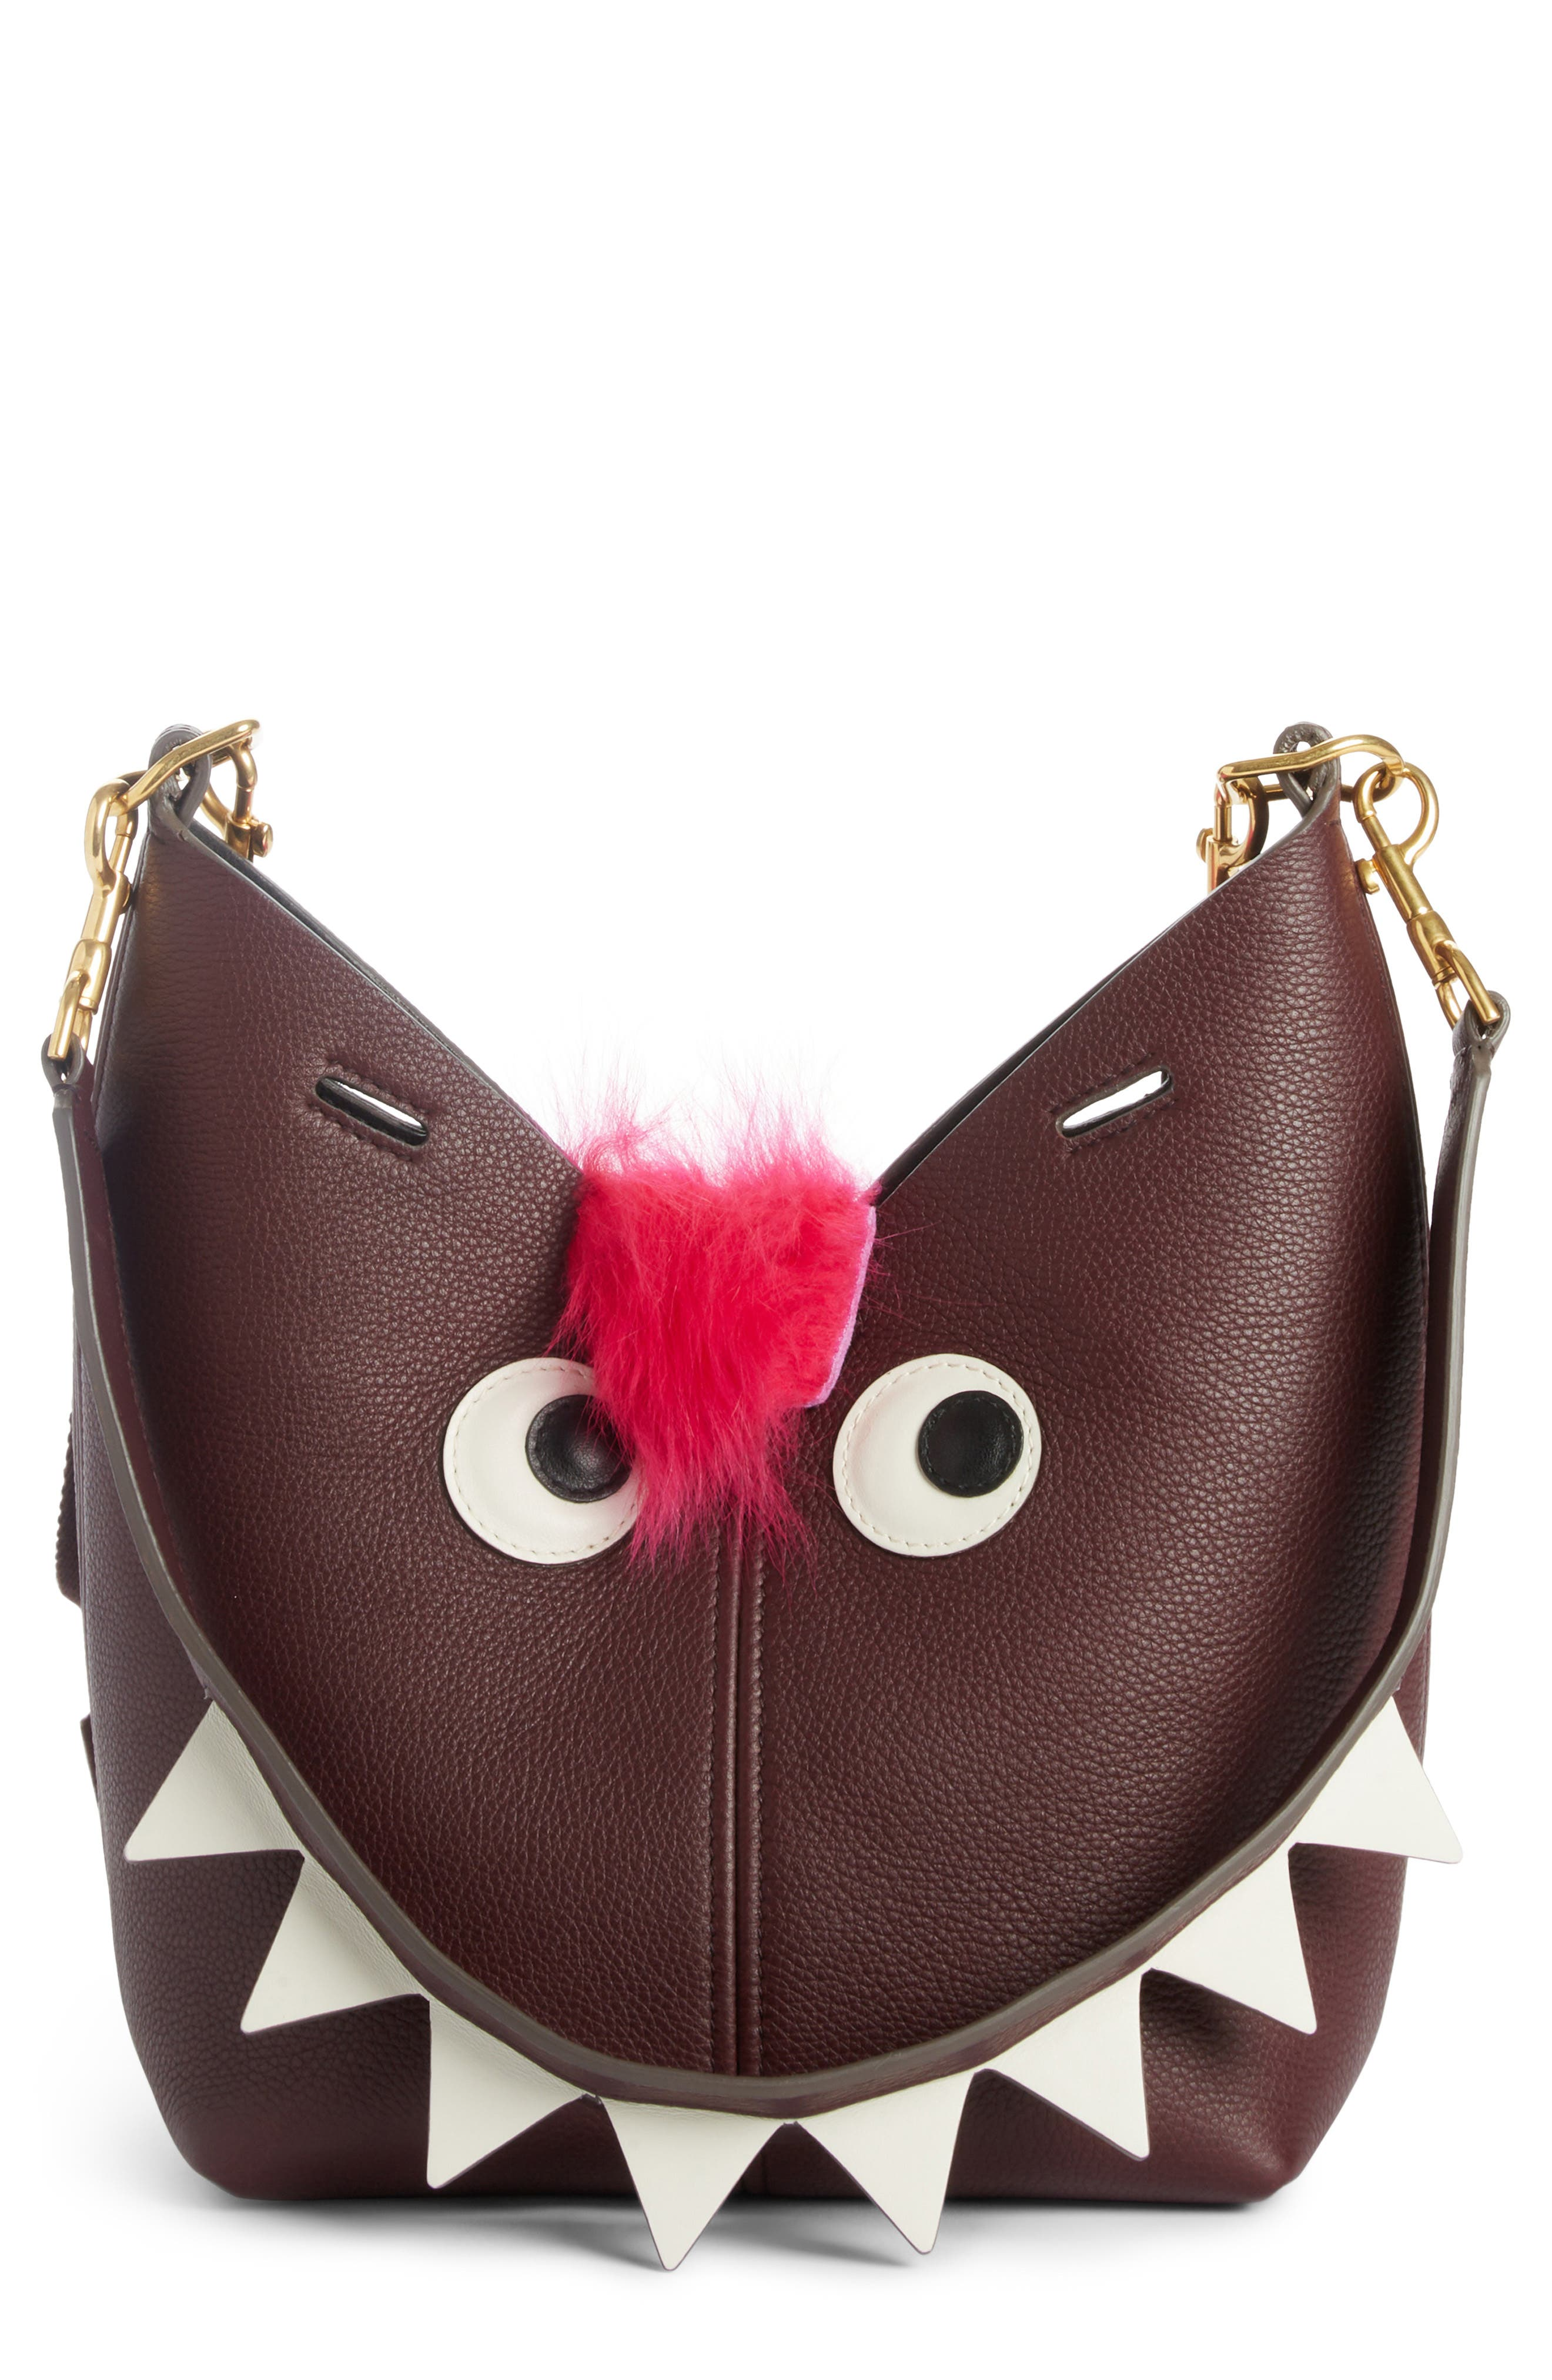 Main Image - Anya Hindmarch Build a Bag Mini Creature Leather Shoulder Bag with Genuine Shearling